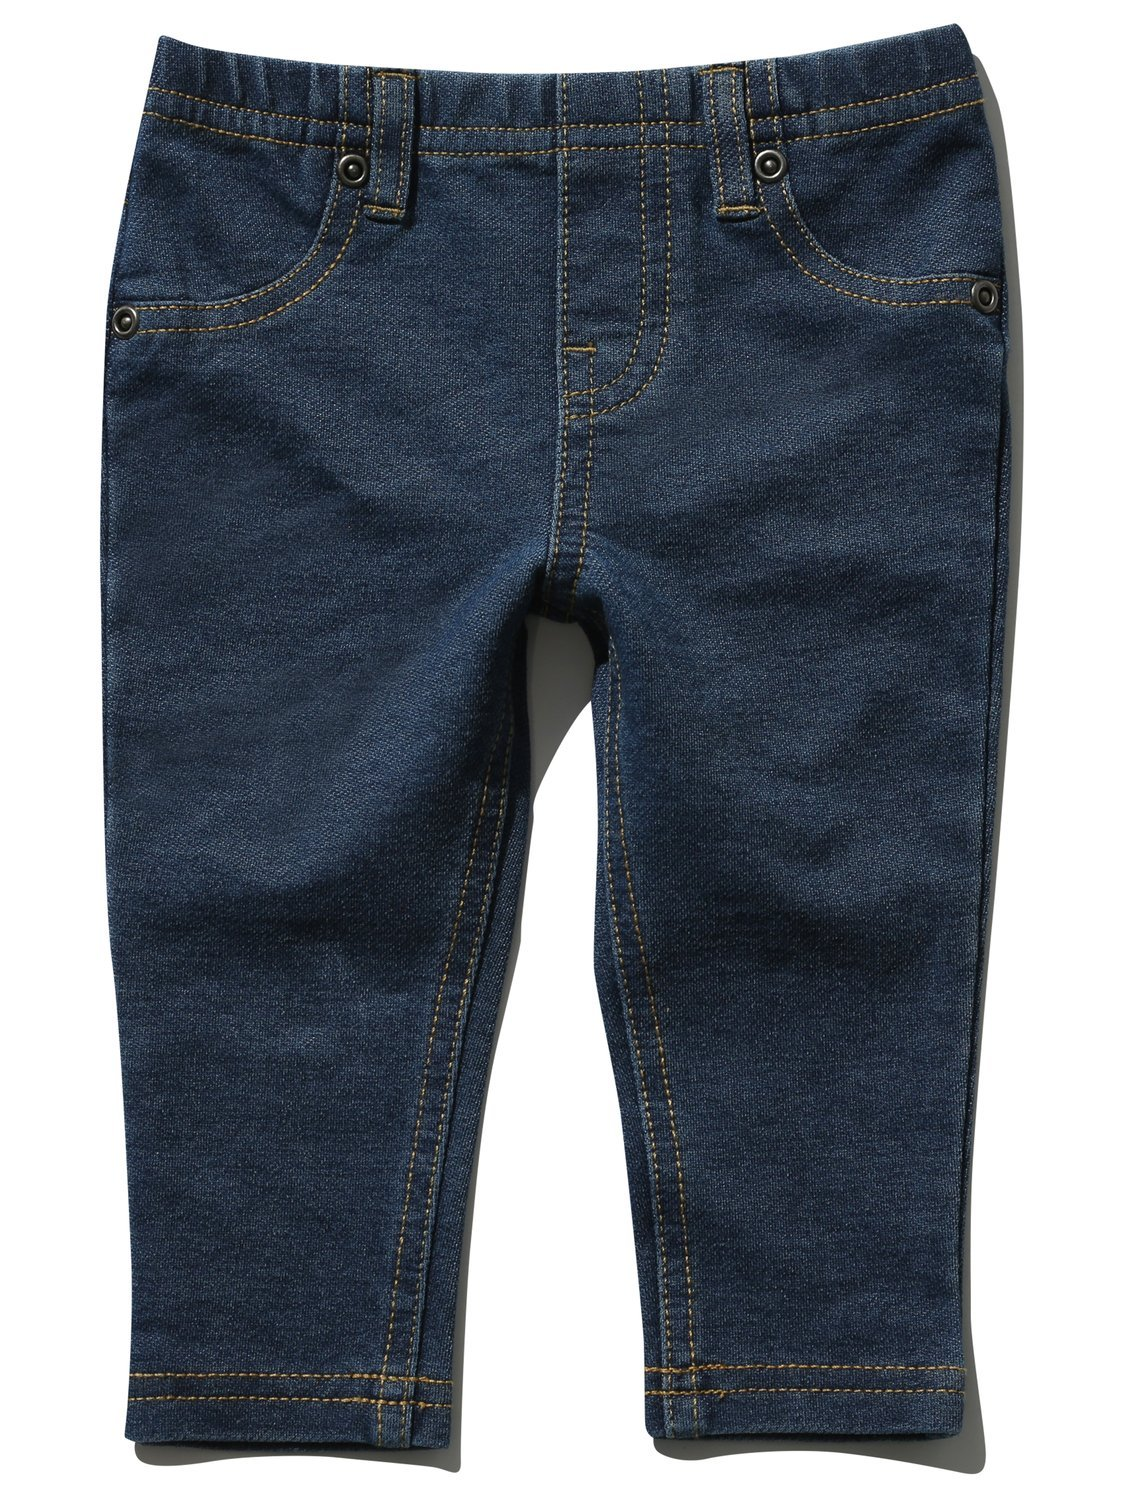 M&Co Baby Girl Cotton Stretch Denim Look Stitch Detail Back Pockets Belt Loops Jeggings